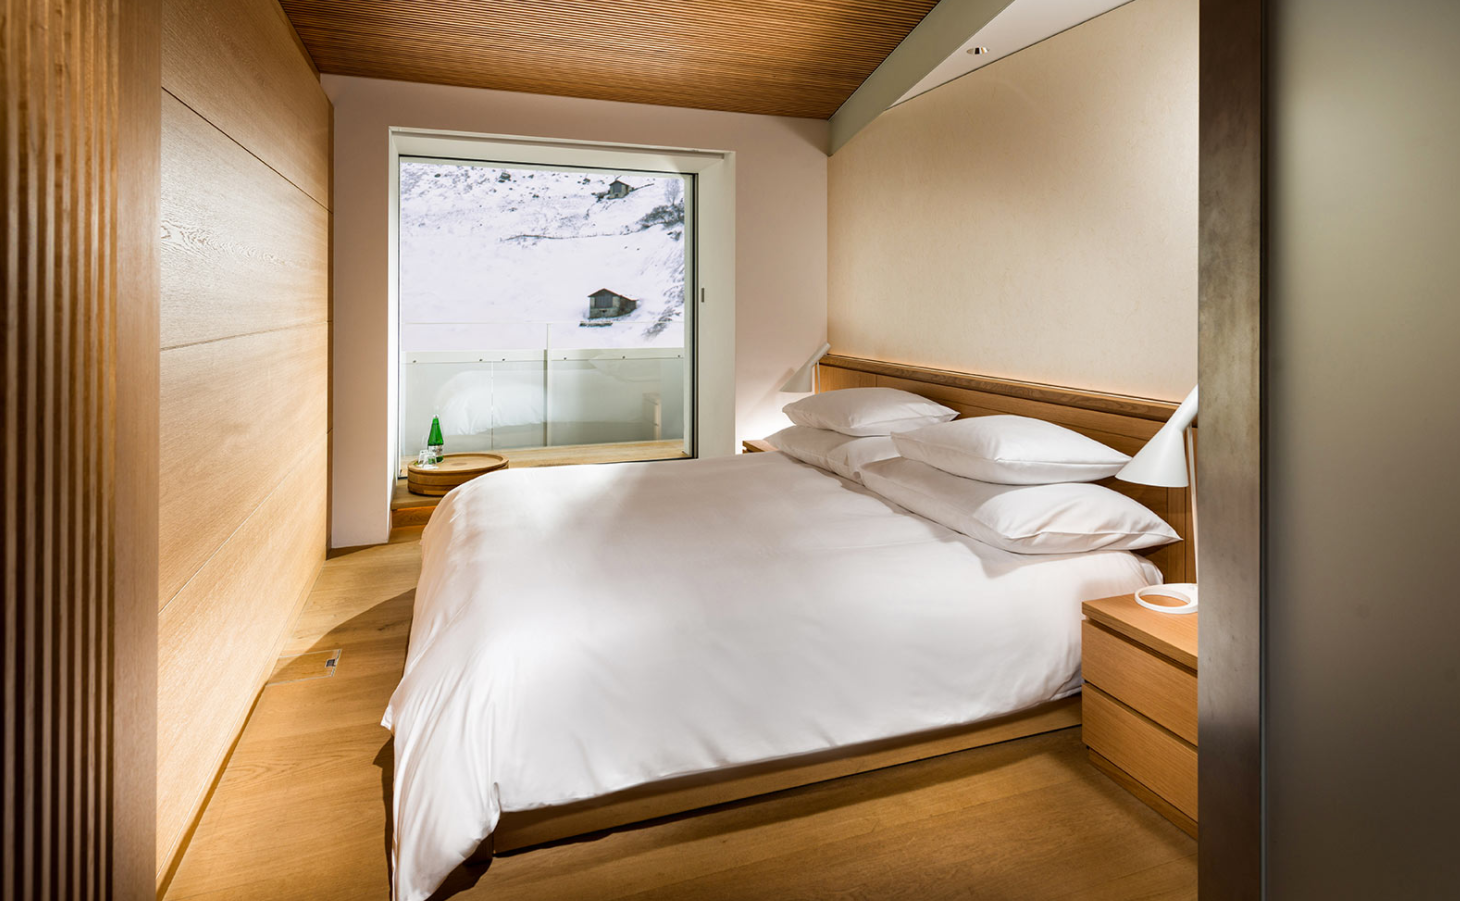 Luxe 39 house of architects 39 spa hotel features rooms by for Design hotel vals